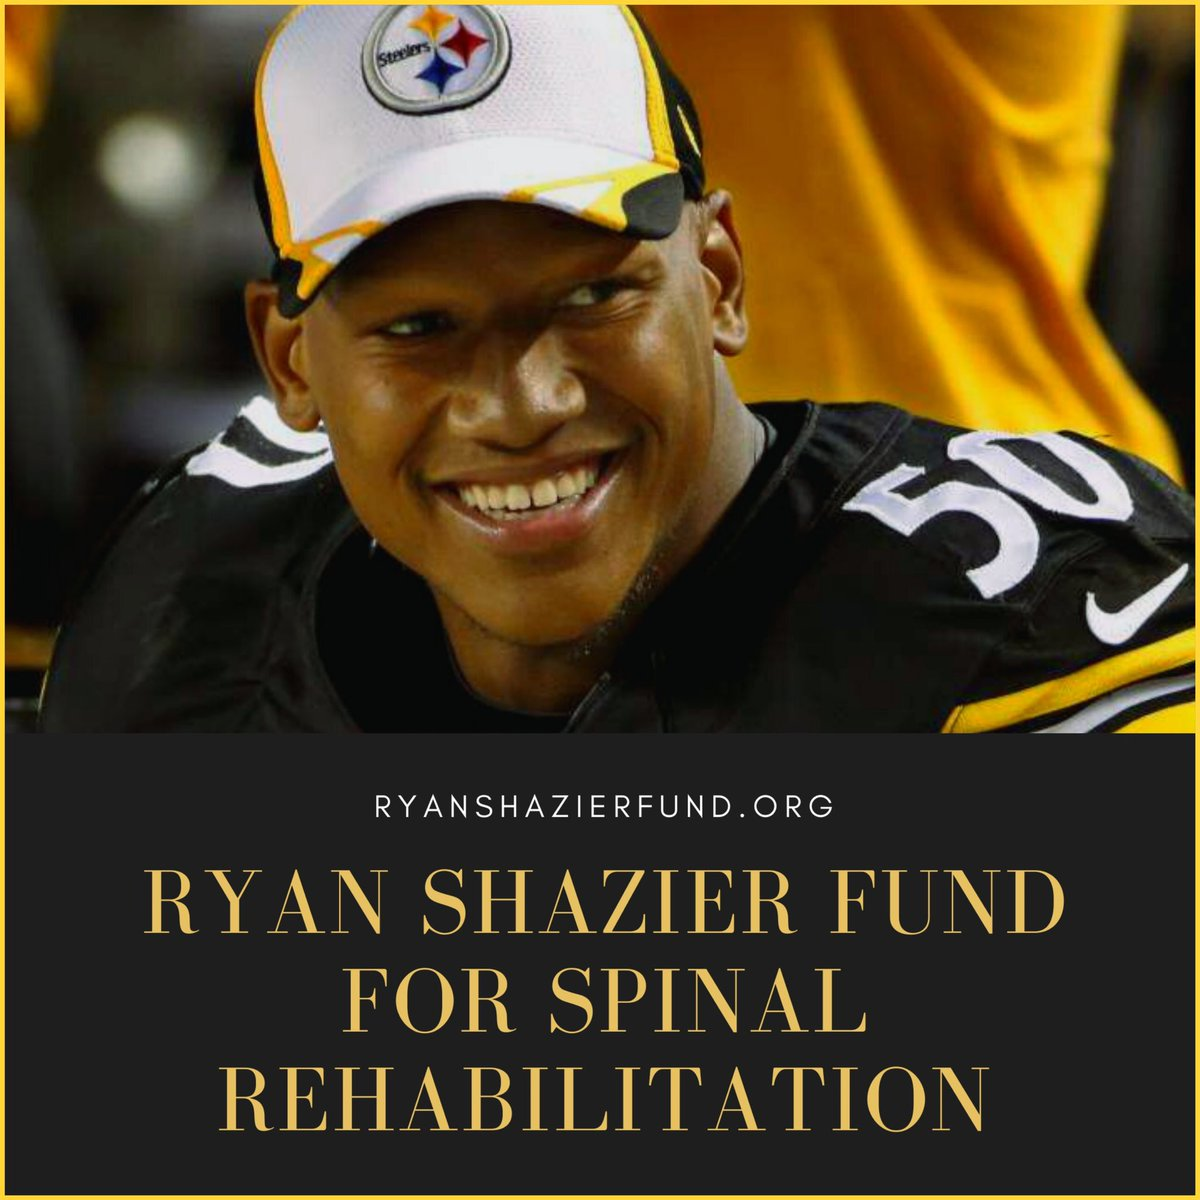 Congrats to Ryan Shazier on the launch of his Spinal Rehab foundation. I'm sure you will help many people. Wishing you all the best in everything that you do‼️#HereWeGo #Steelers .@RyanShazier Steelers